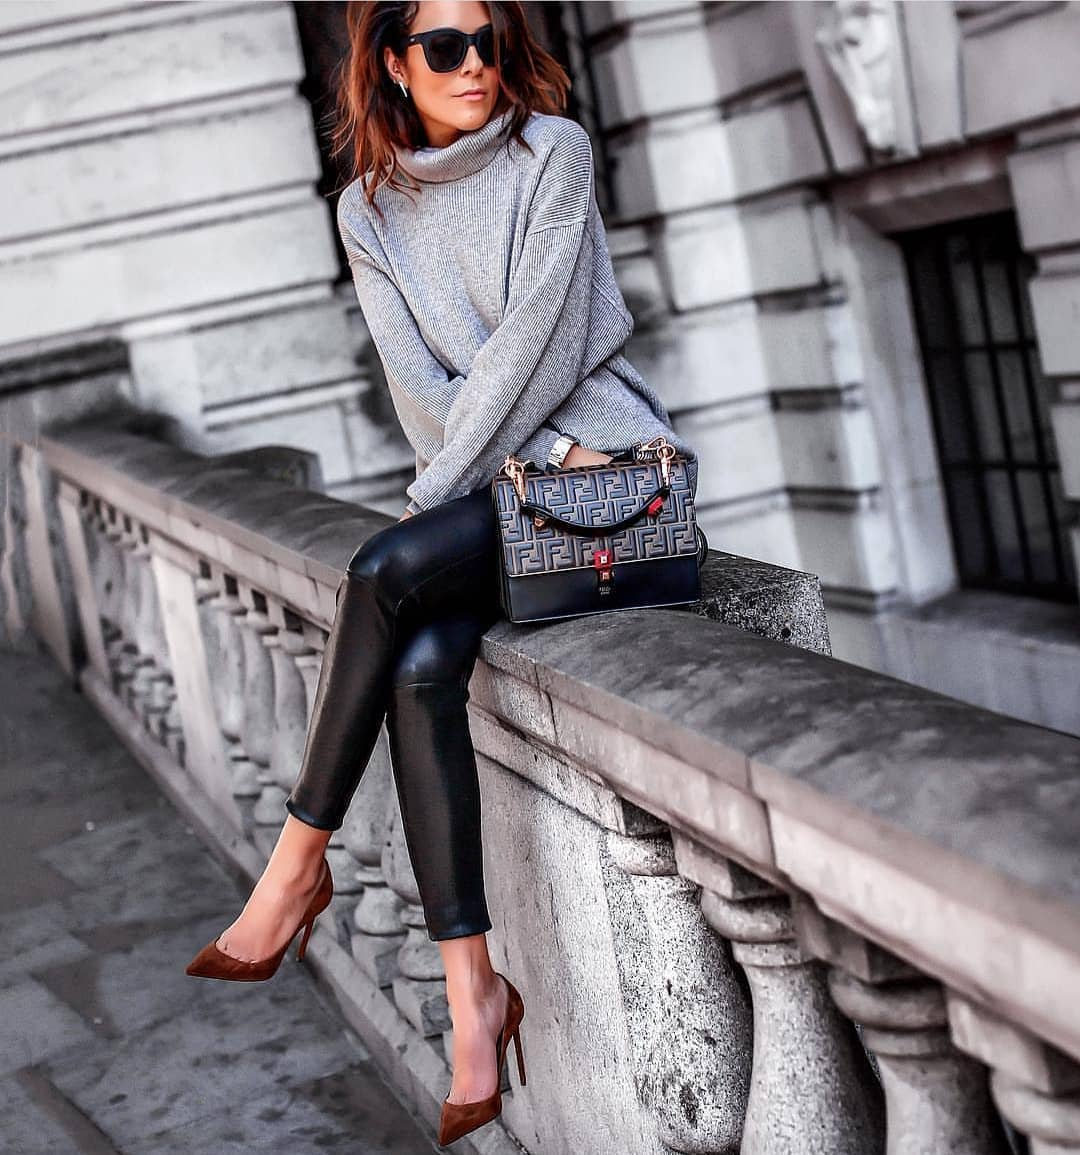 Oversized Grey Sweater And Black Leather Slim Pants: Perfect Fall Outfit 2019